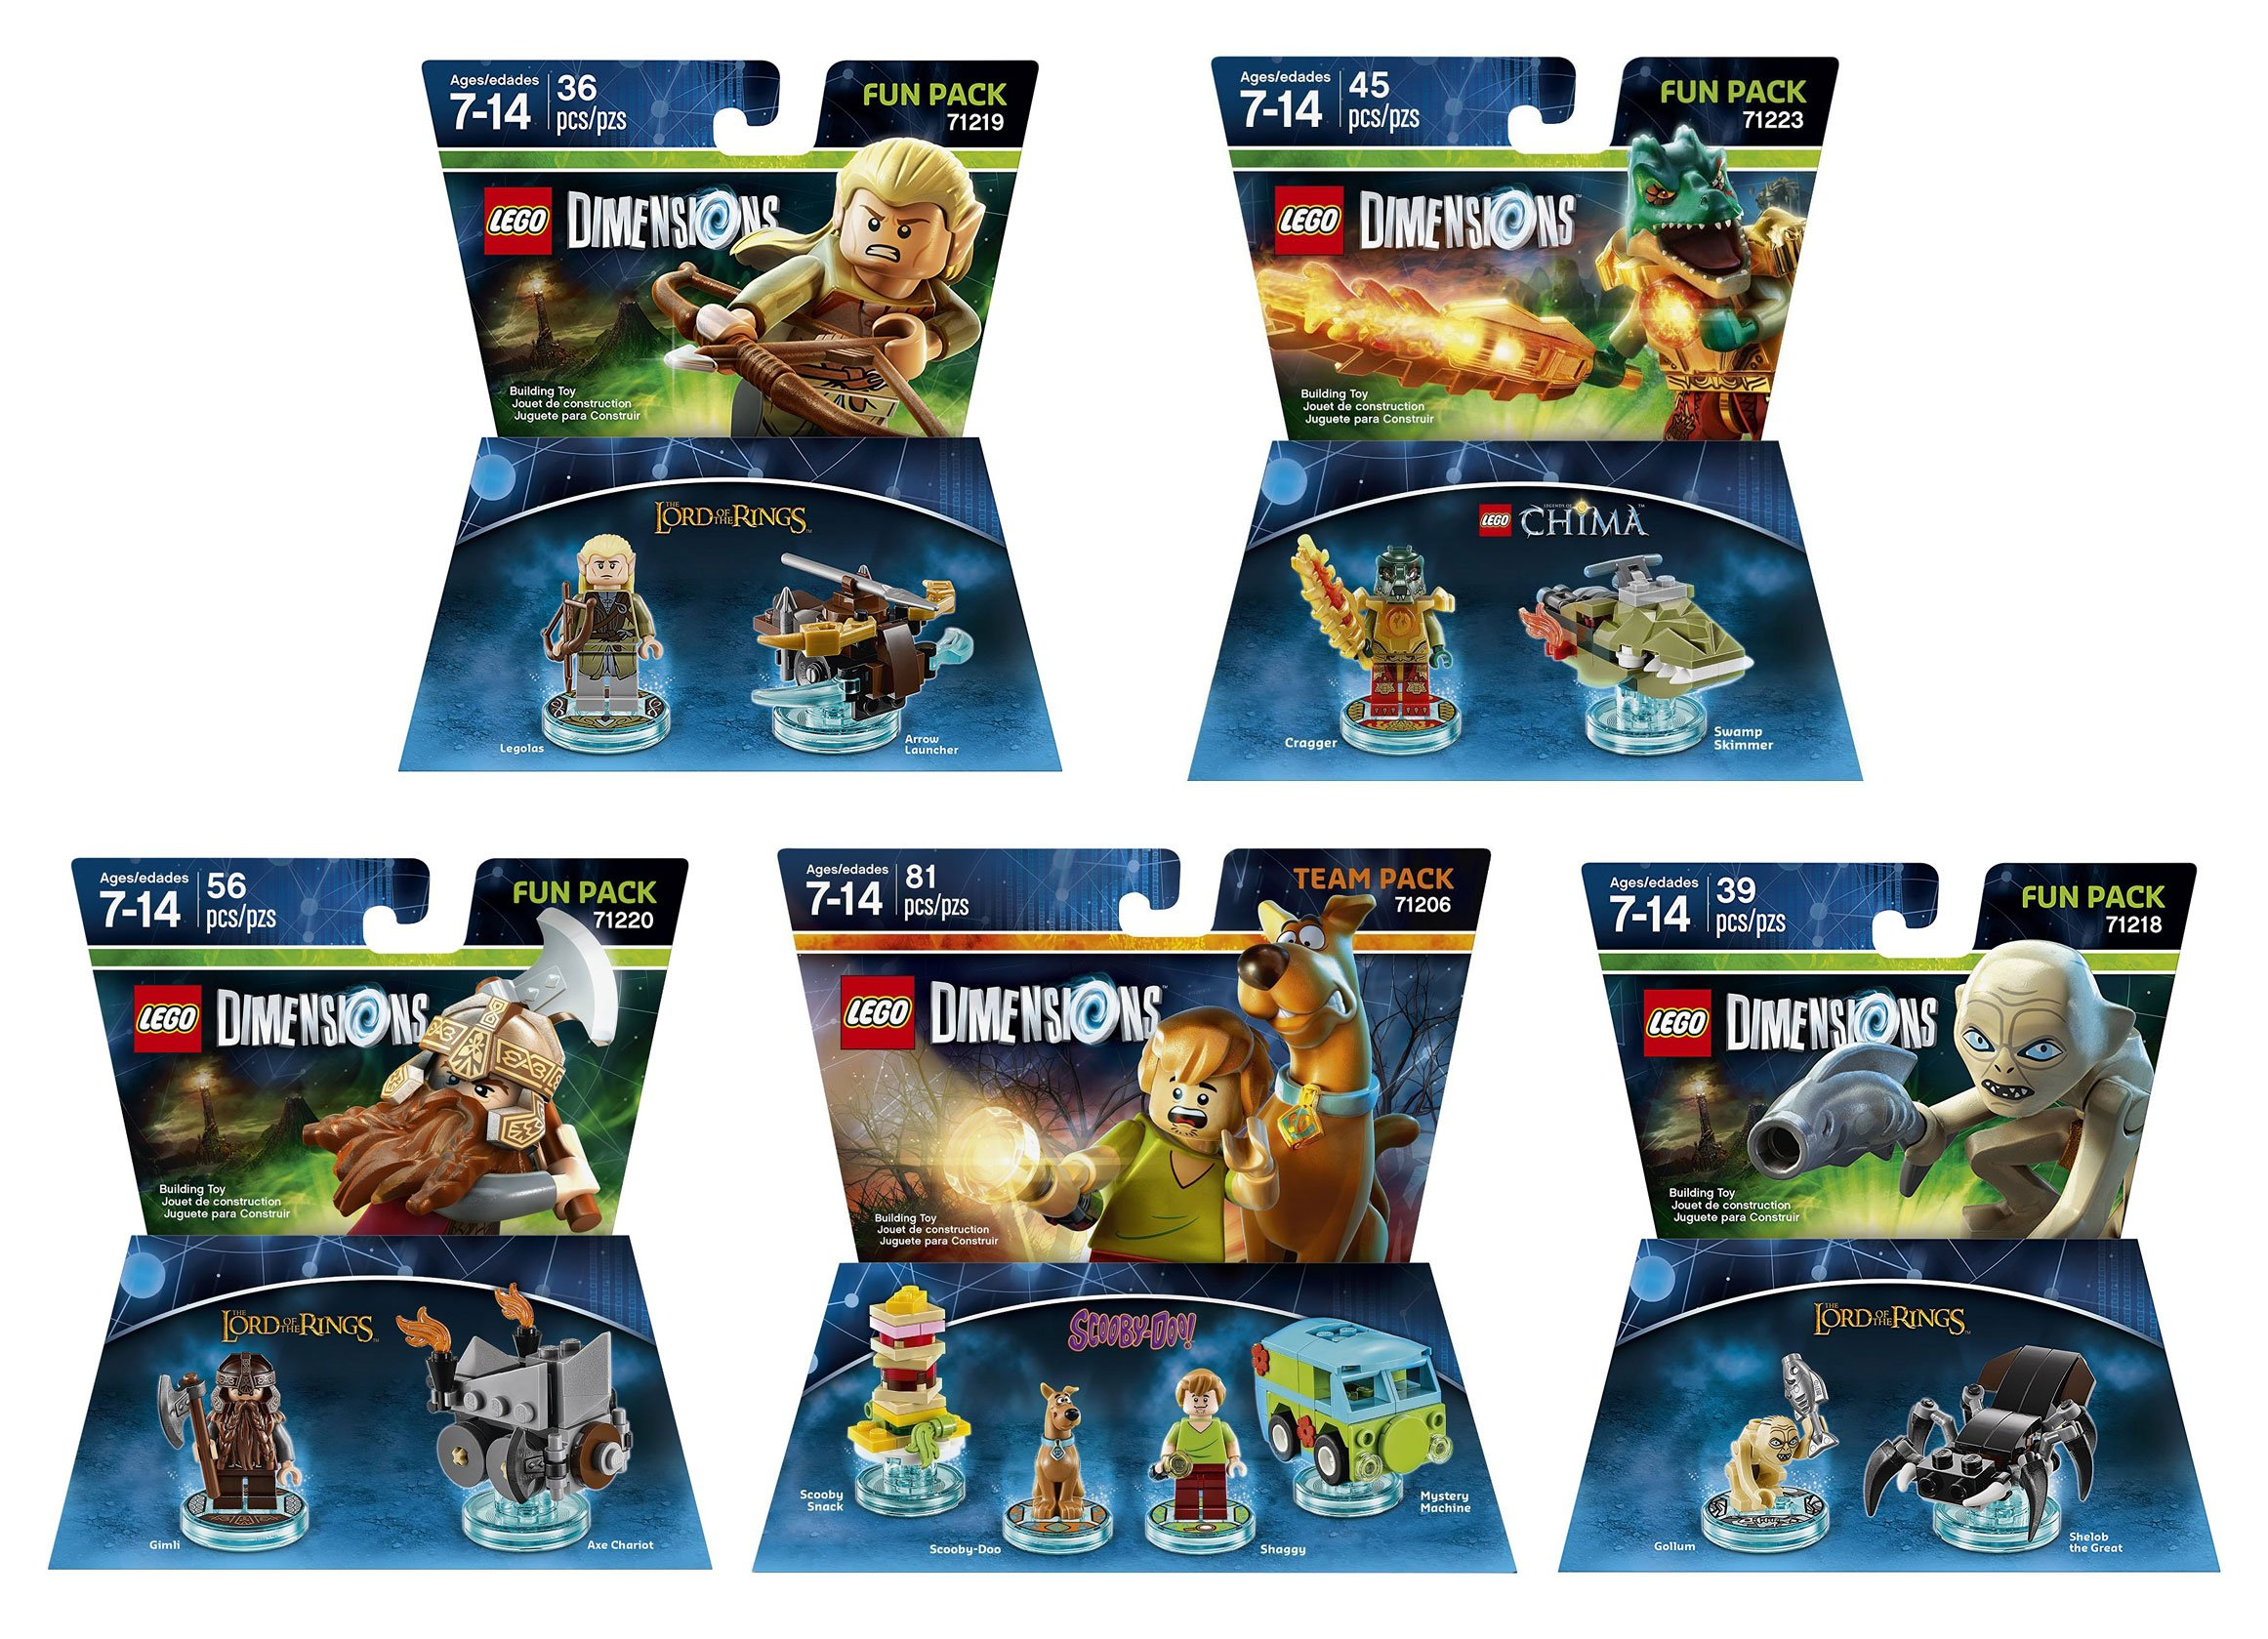 Scooby Doo Team Pack + The Lord Of The Rings Legolas + Gimli + Gollum + The Legend Of Chima Cragger Fun Packs - LEGO Dimensions - Not Machine Specific